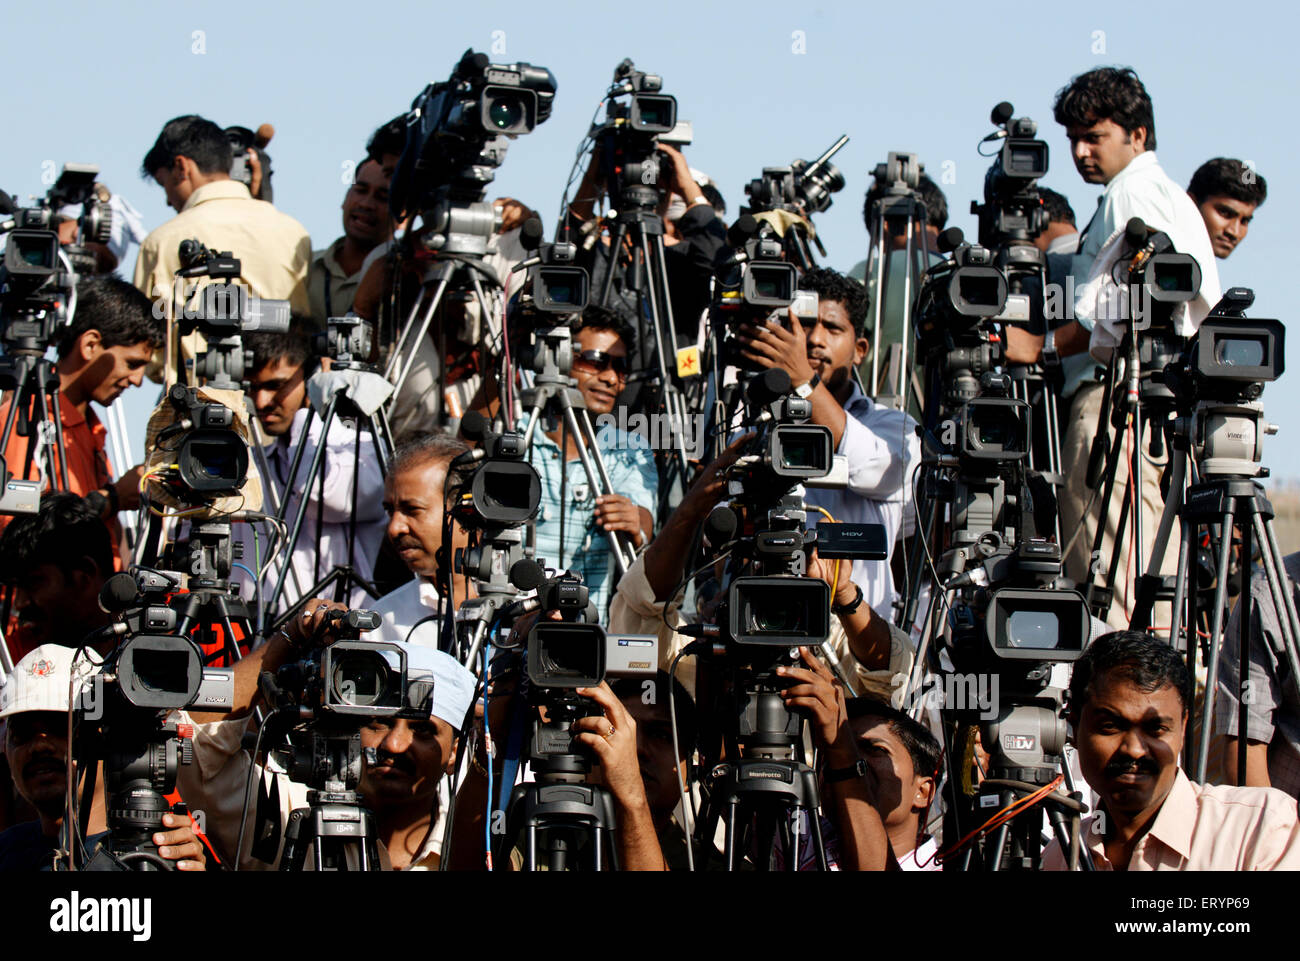 Cameramen representing different news channels electronic media during political rally ; Bombay Mumbai - Stock Image